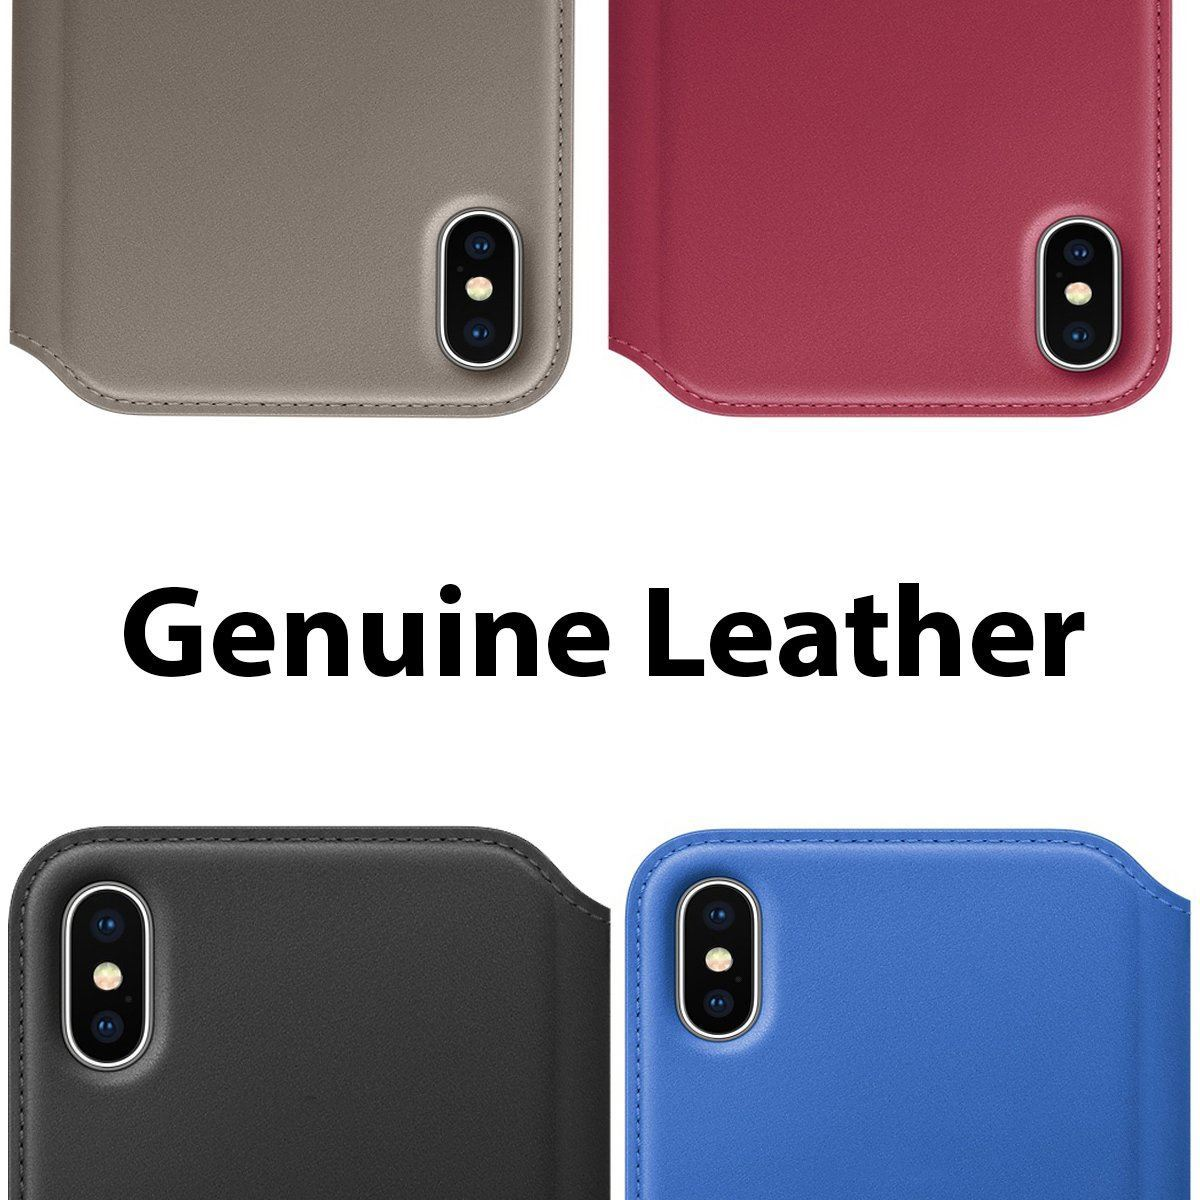 Genuine Leather Folio iPhone 6 Case